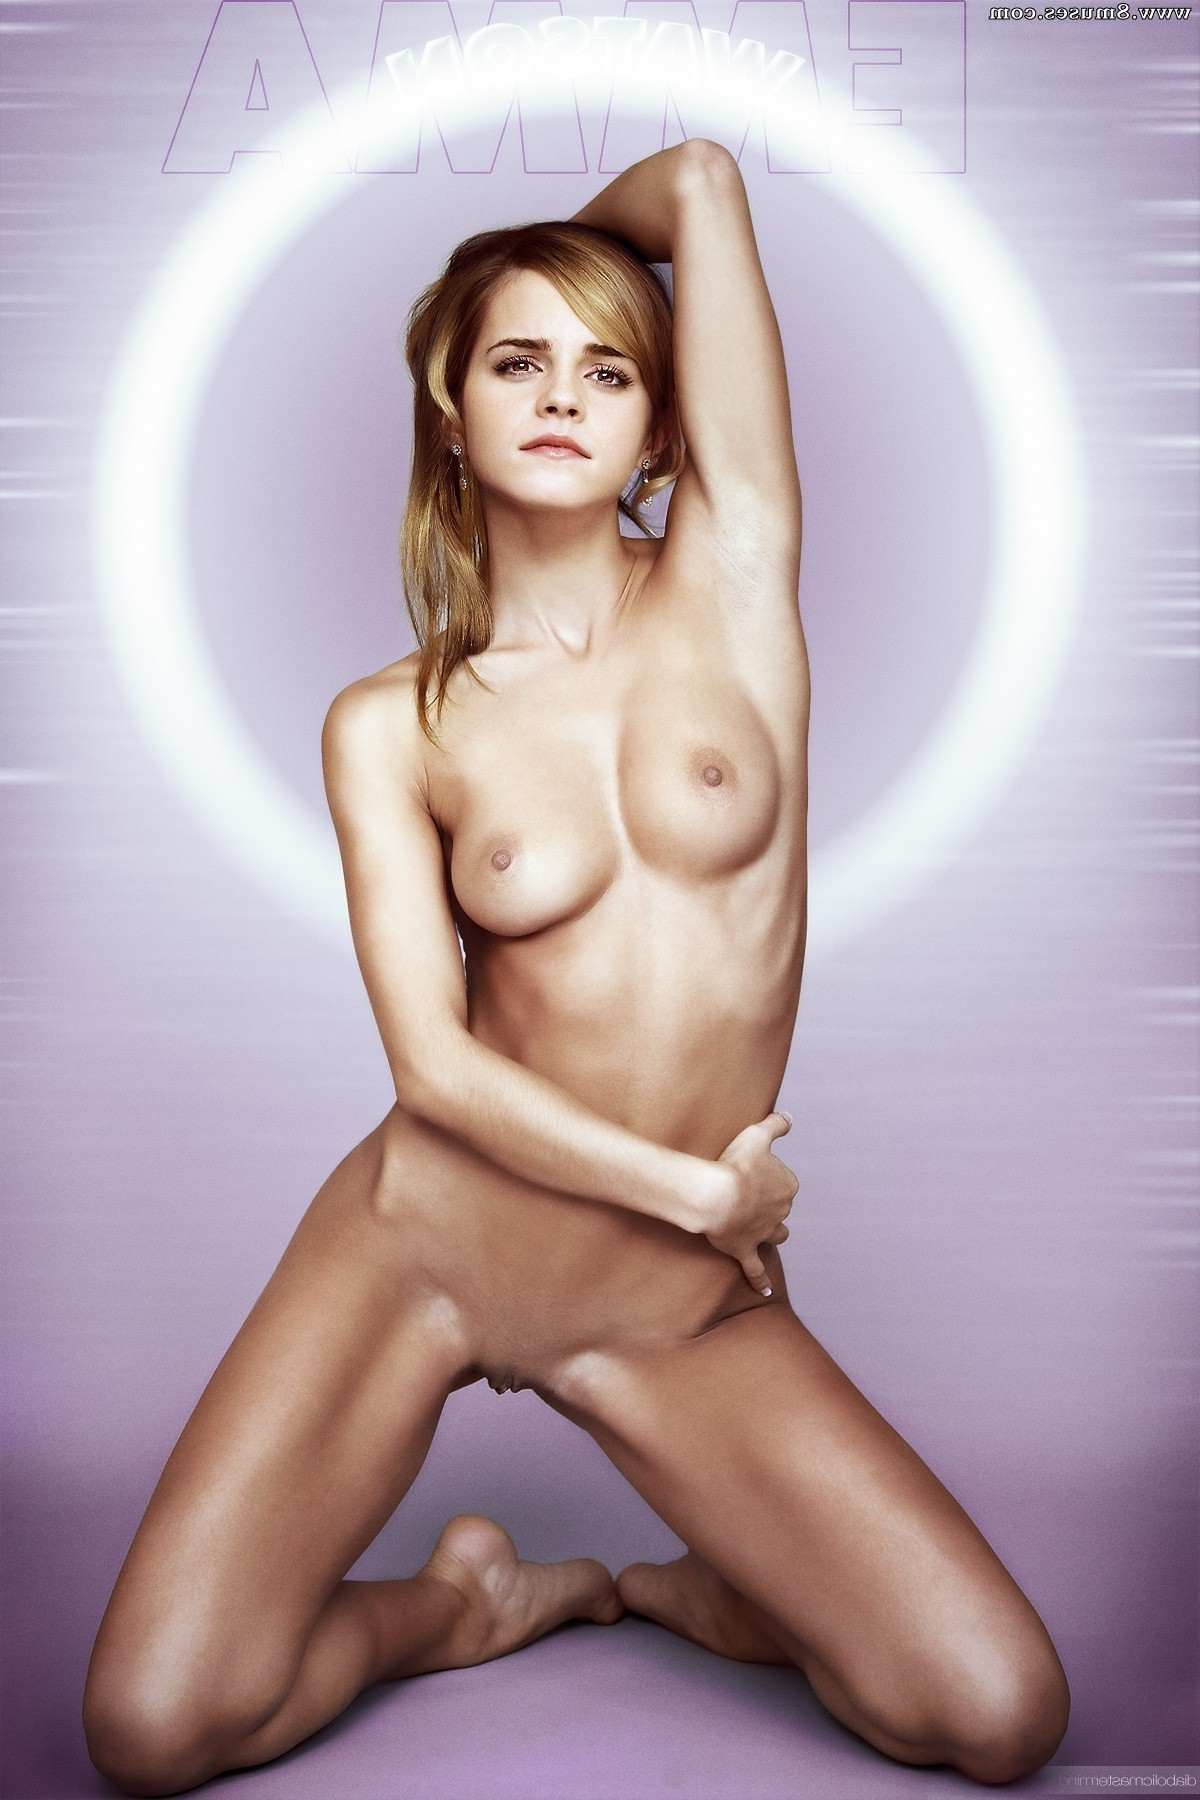 Fake-Celebrities-Sex-Pictures/Emma-Watson Emma_Watson__8muses_-_Sex_and_Porn_Comics_415.jpg